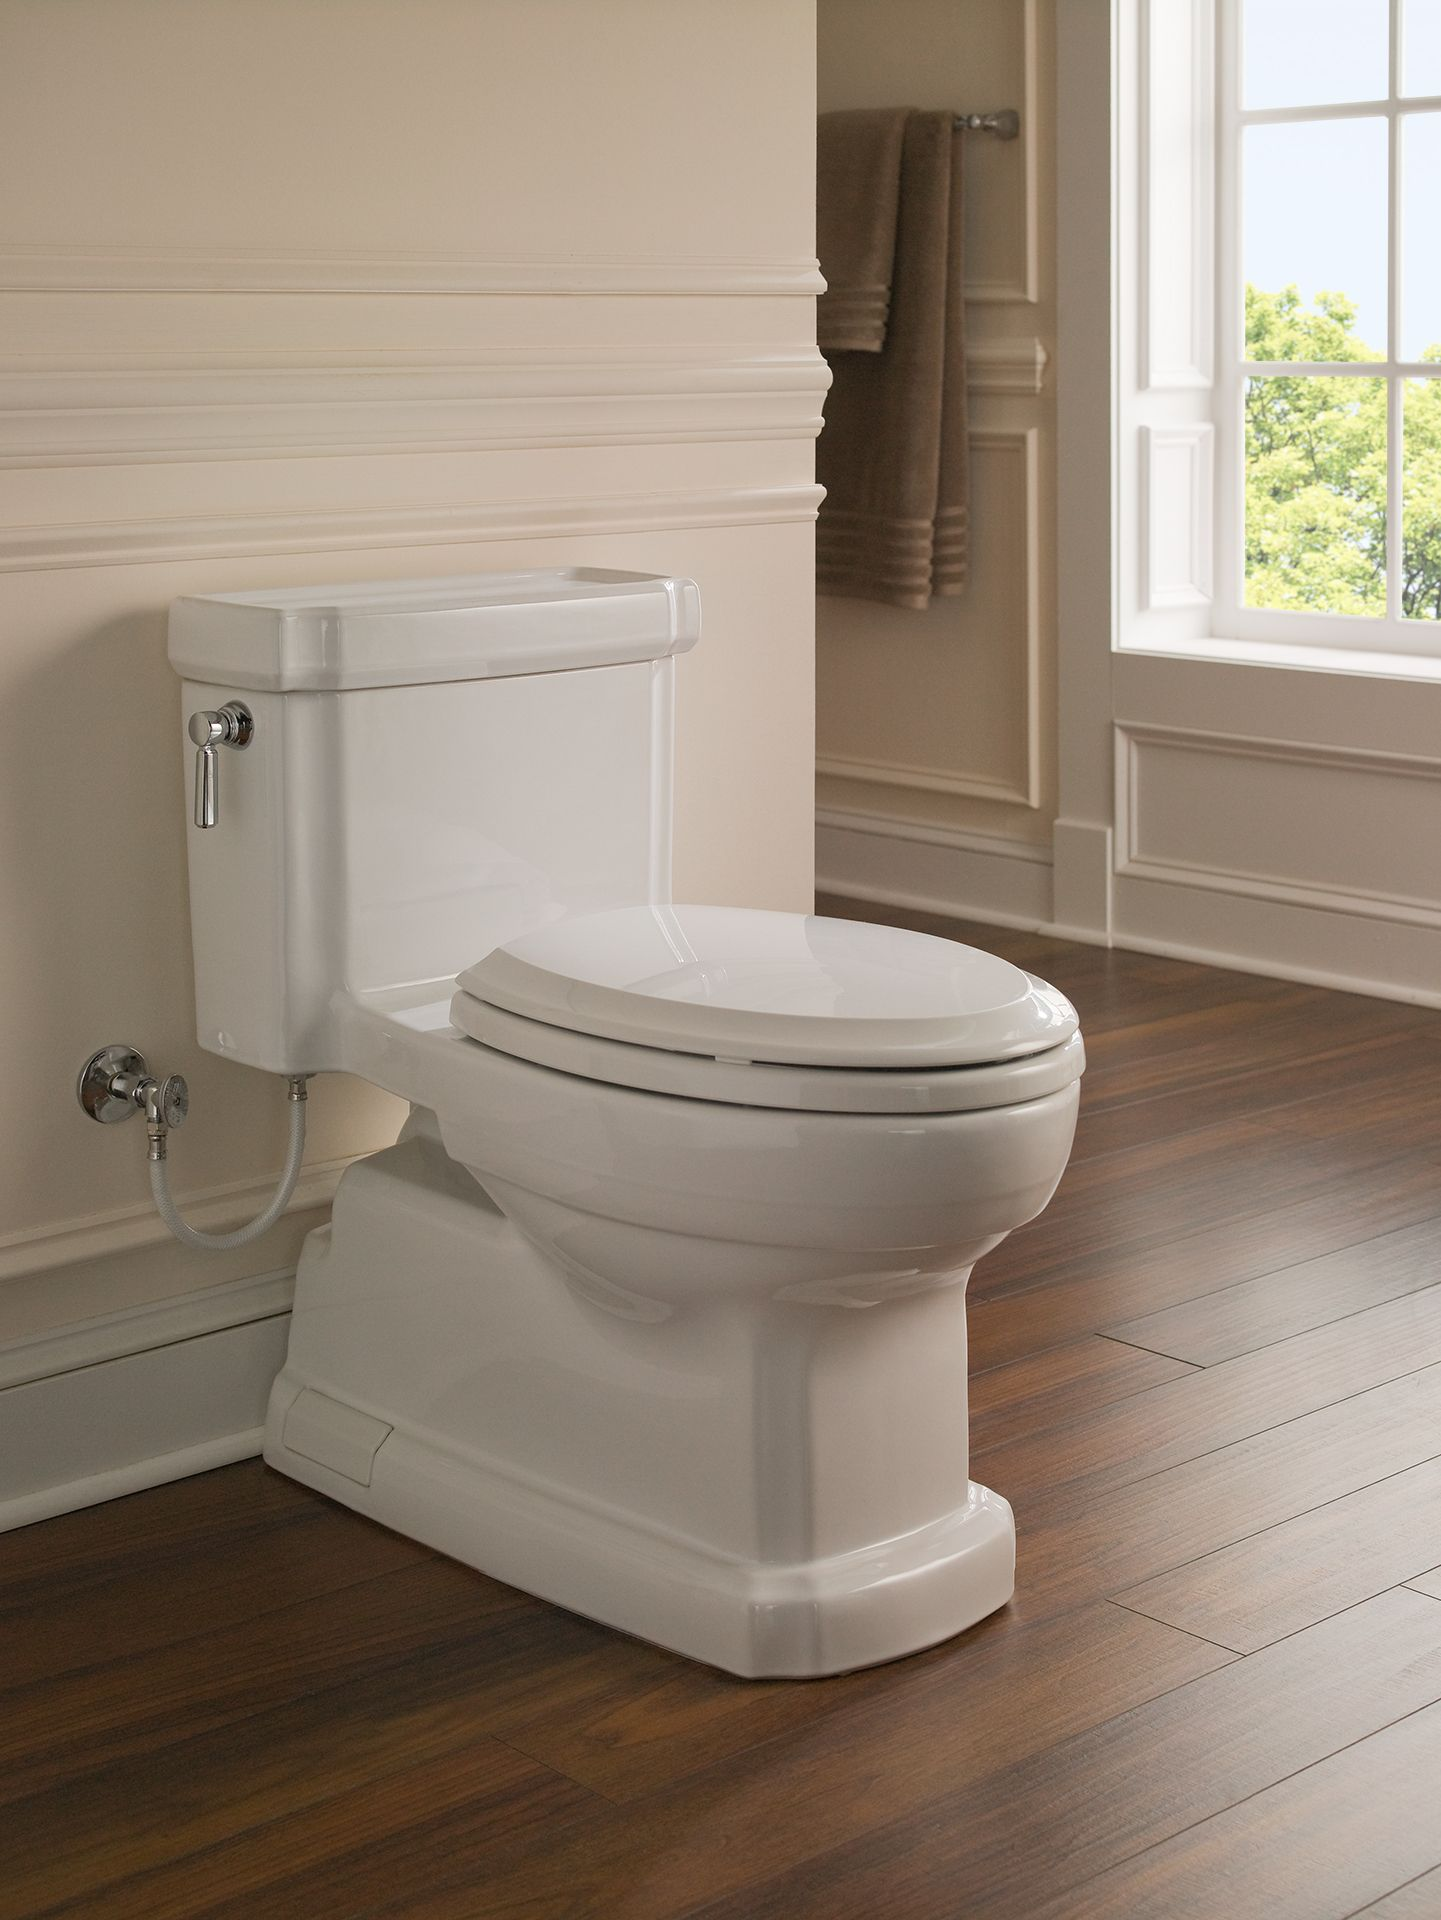 Eco Guinevere 174 One Piece Toilet 1 28 Gpf Elongated Bowl